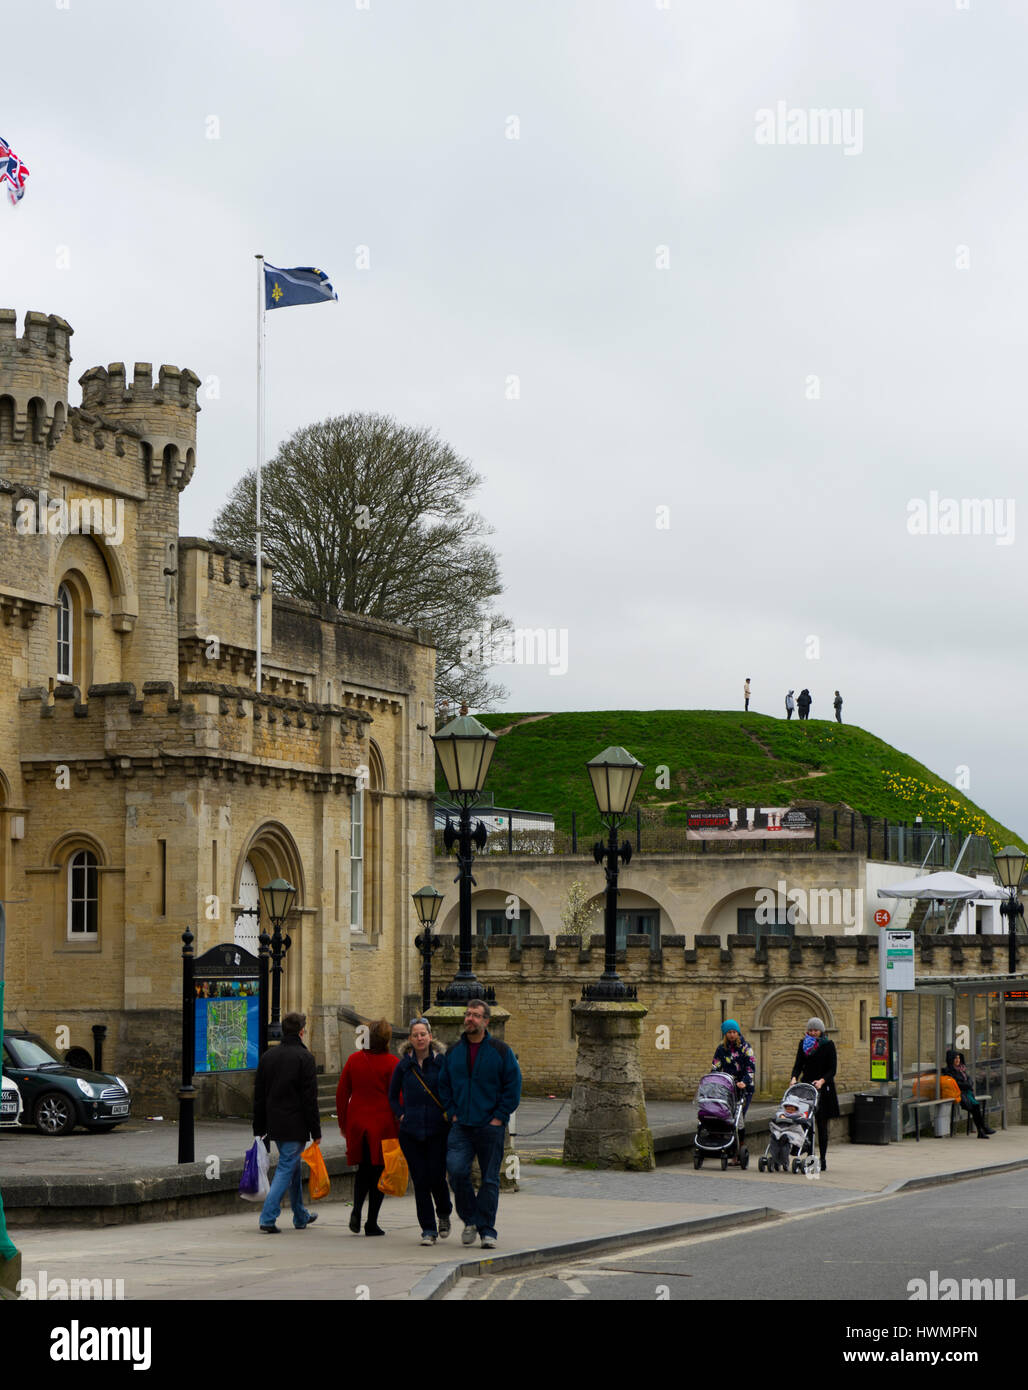 View of the Oxford Castle Mound from the road side. - Stock Image